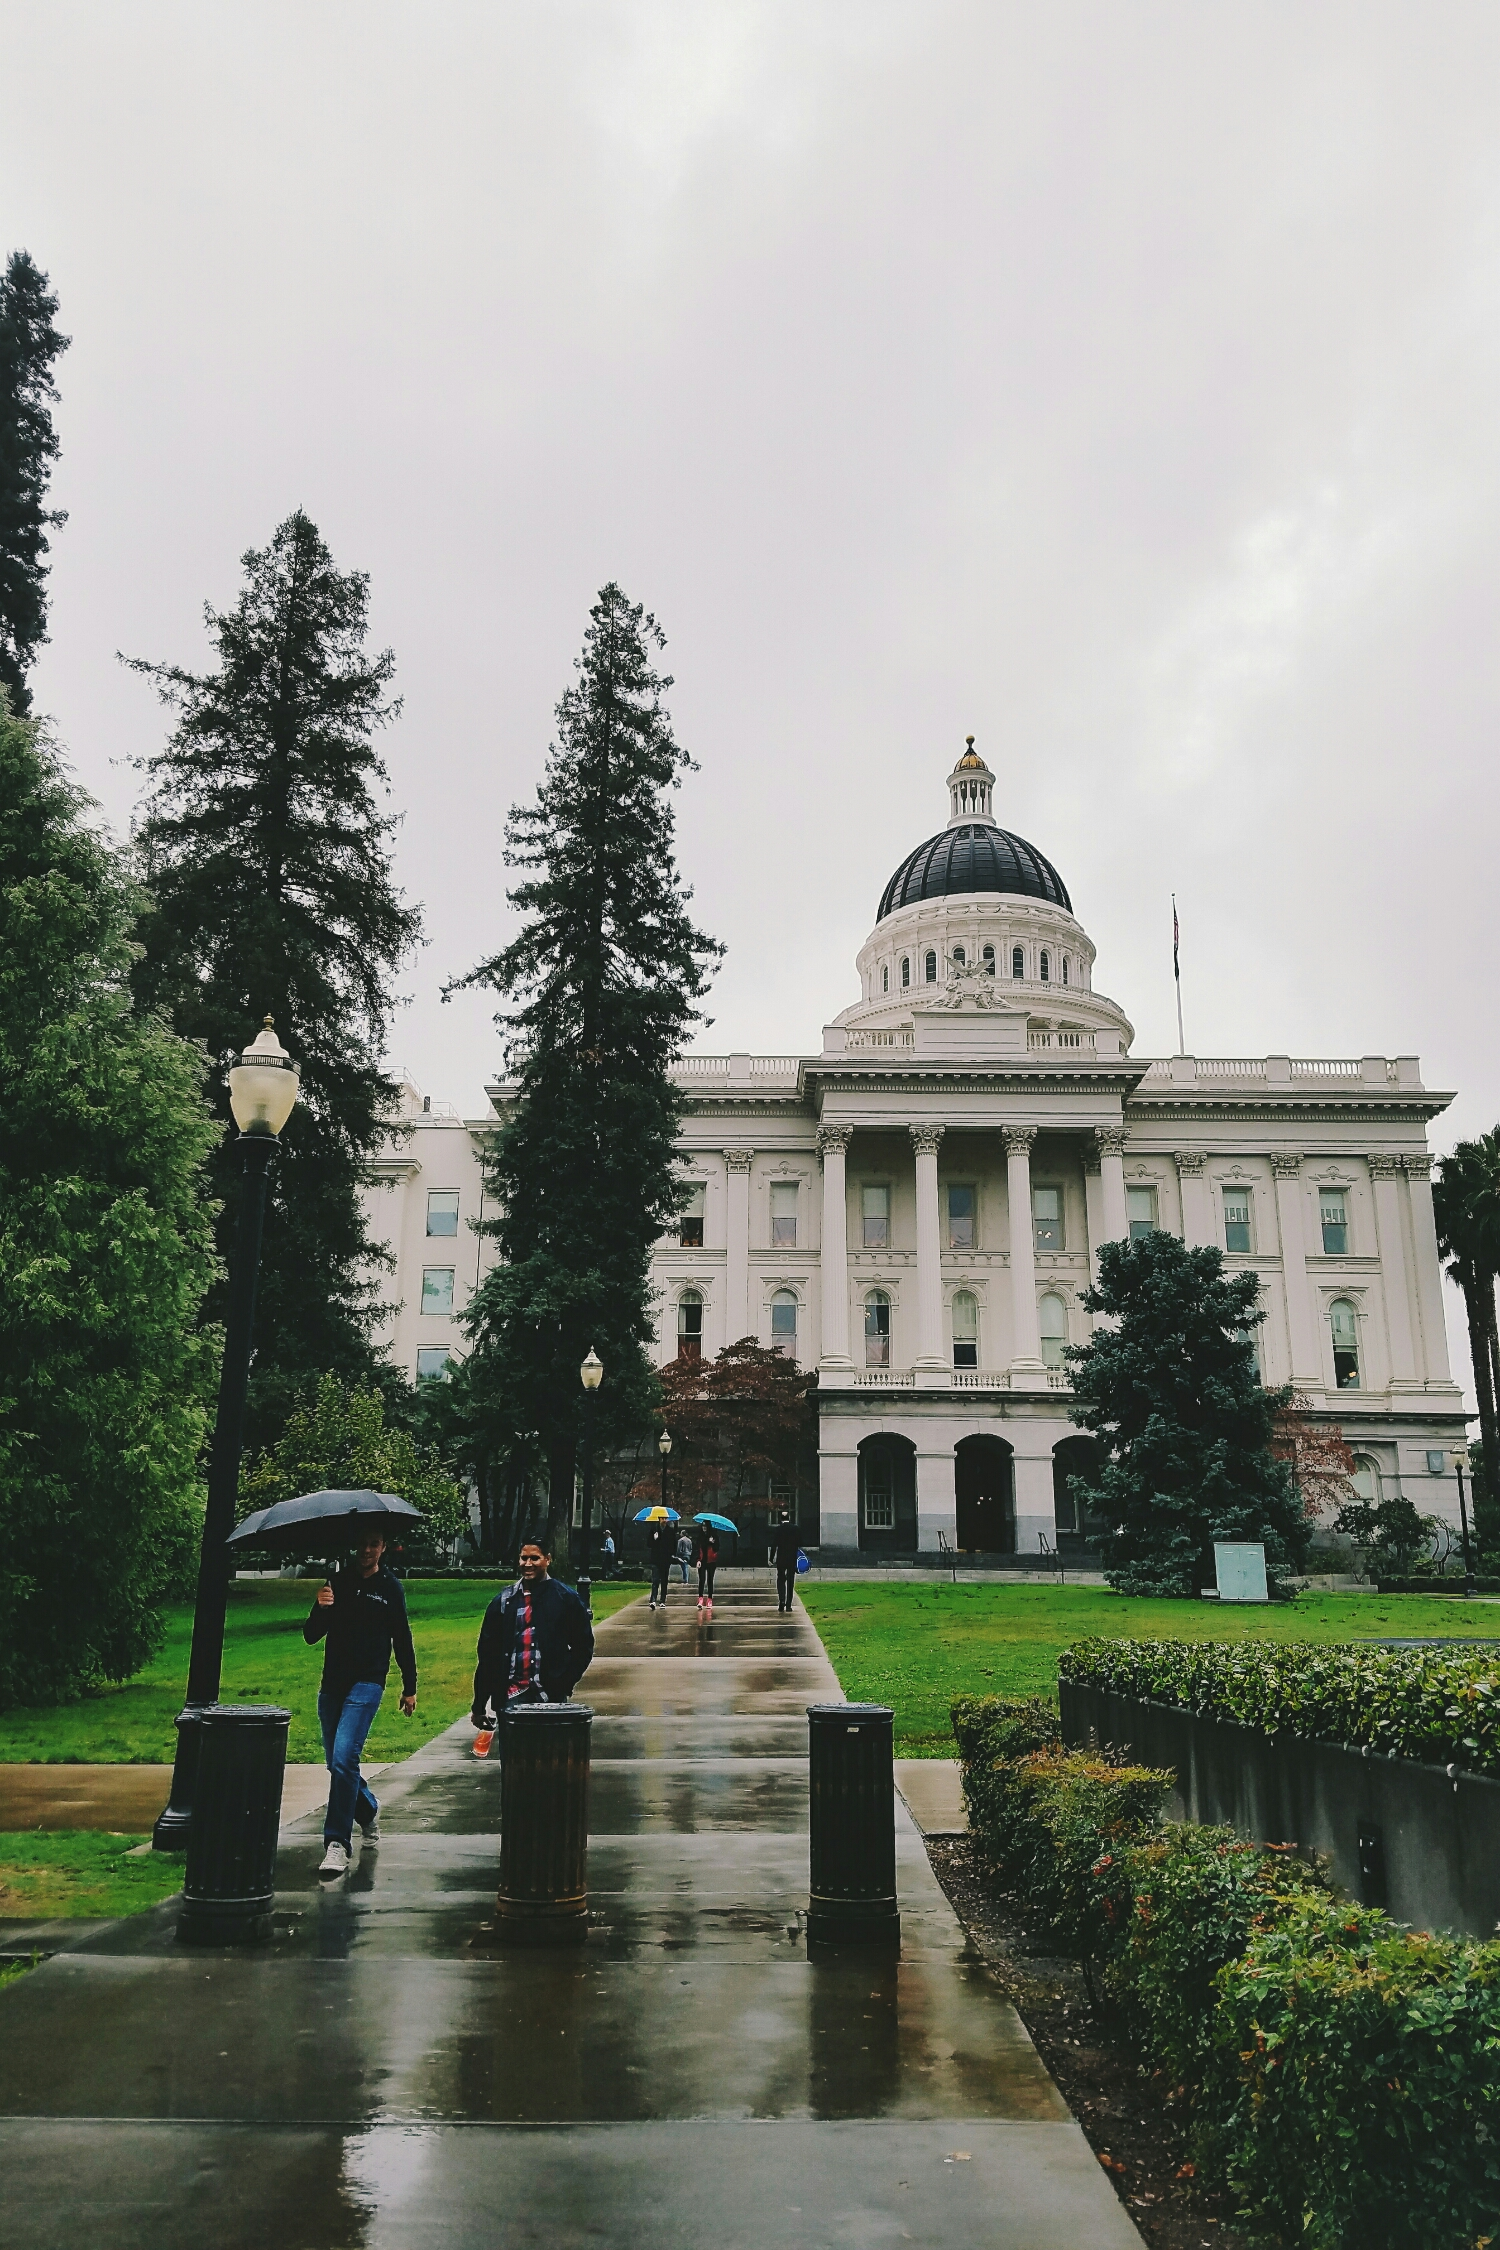 Fall views in Sacramento - lots of green and lots of umbrellas!